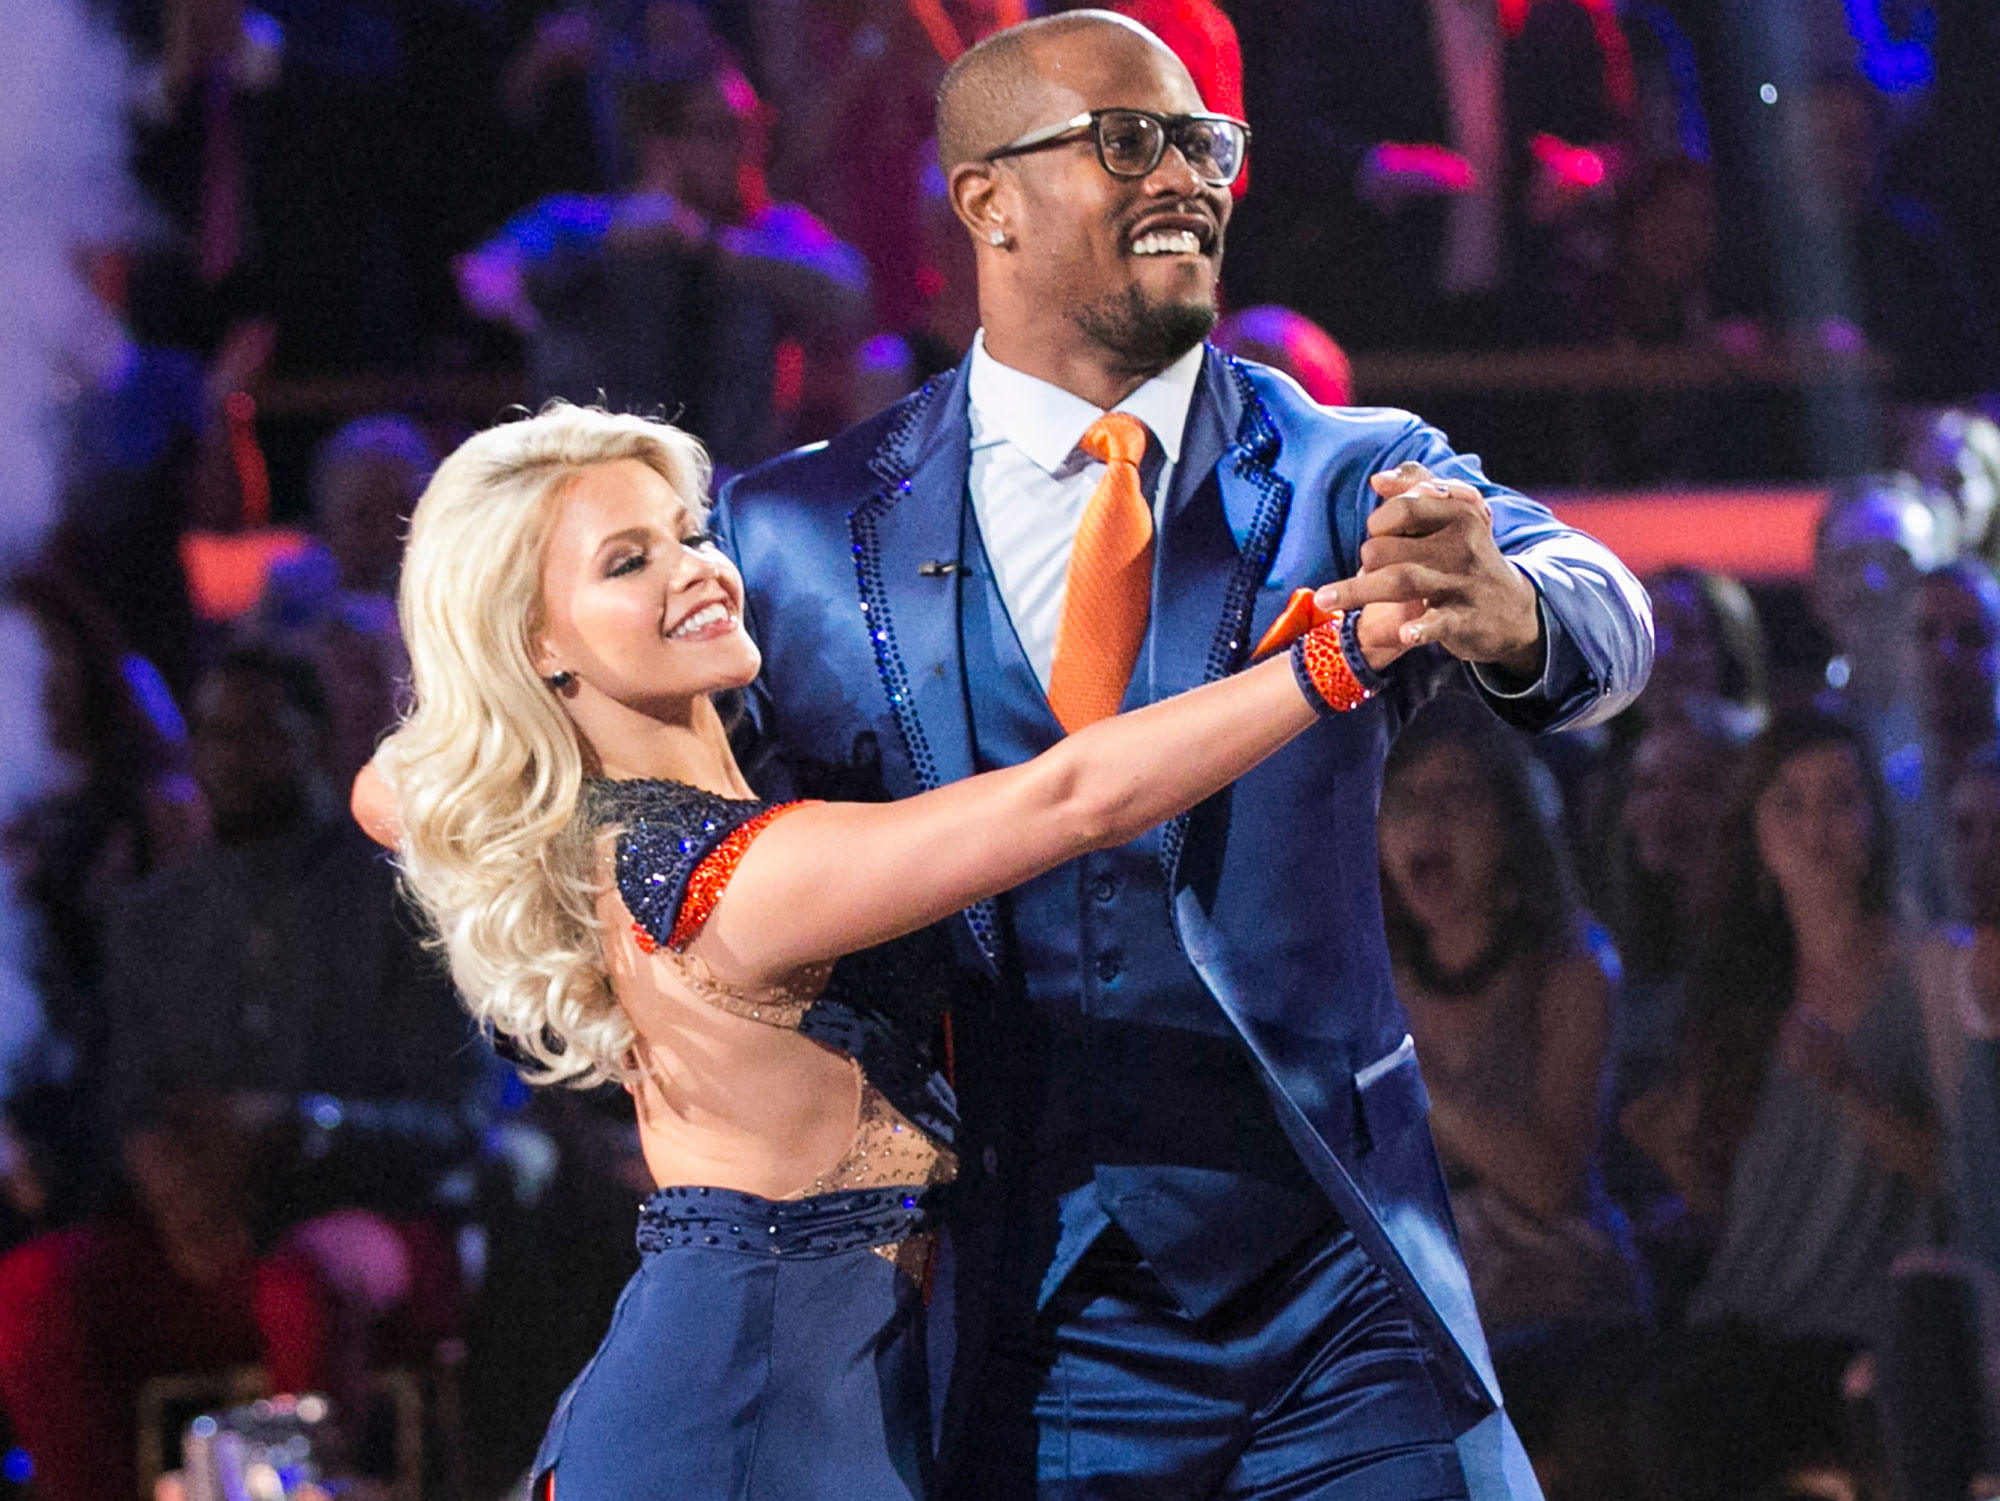 Von Miller with Dancing With The Stars partner Witney Carson